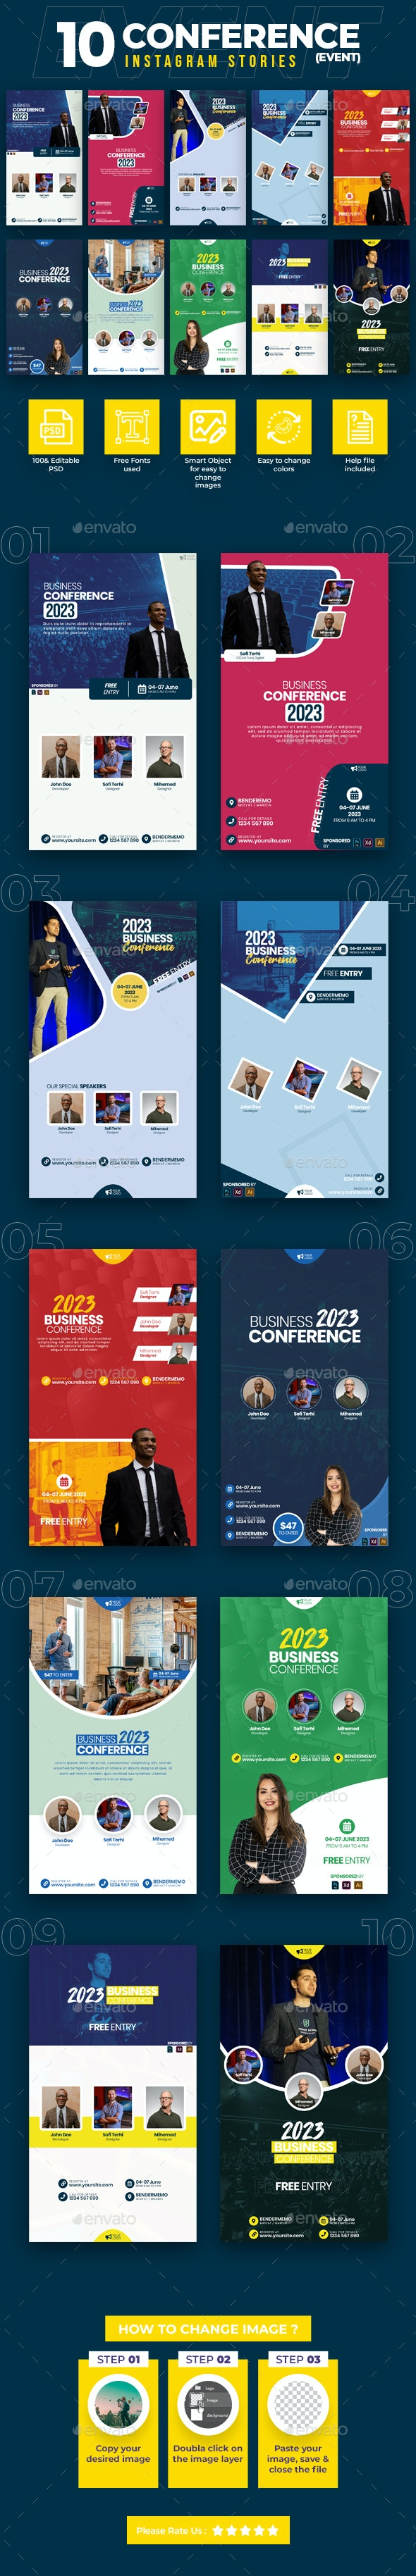 Event & Conference 10 Instagram Stories - Miscellaneous Social Media